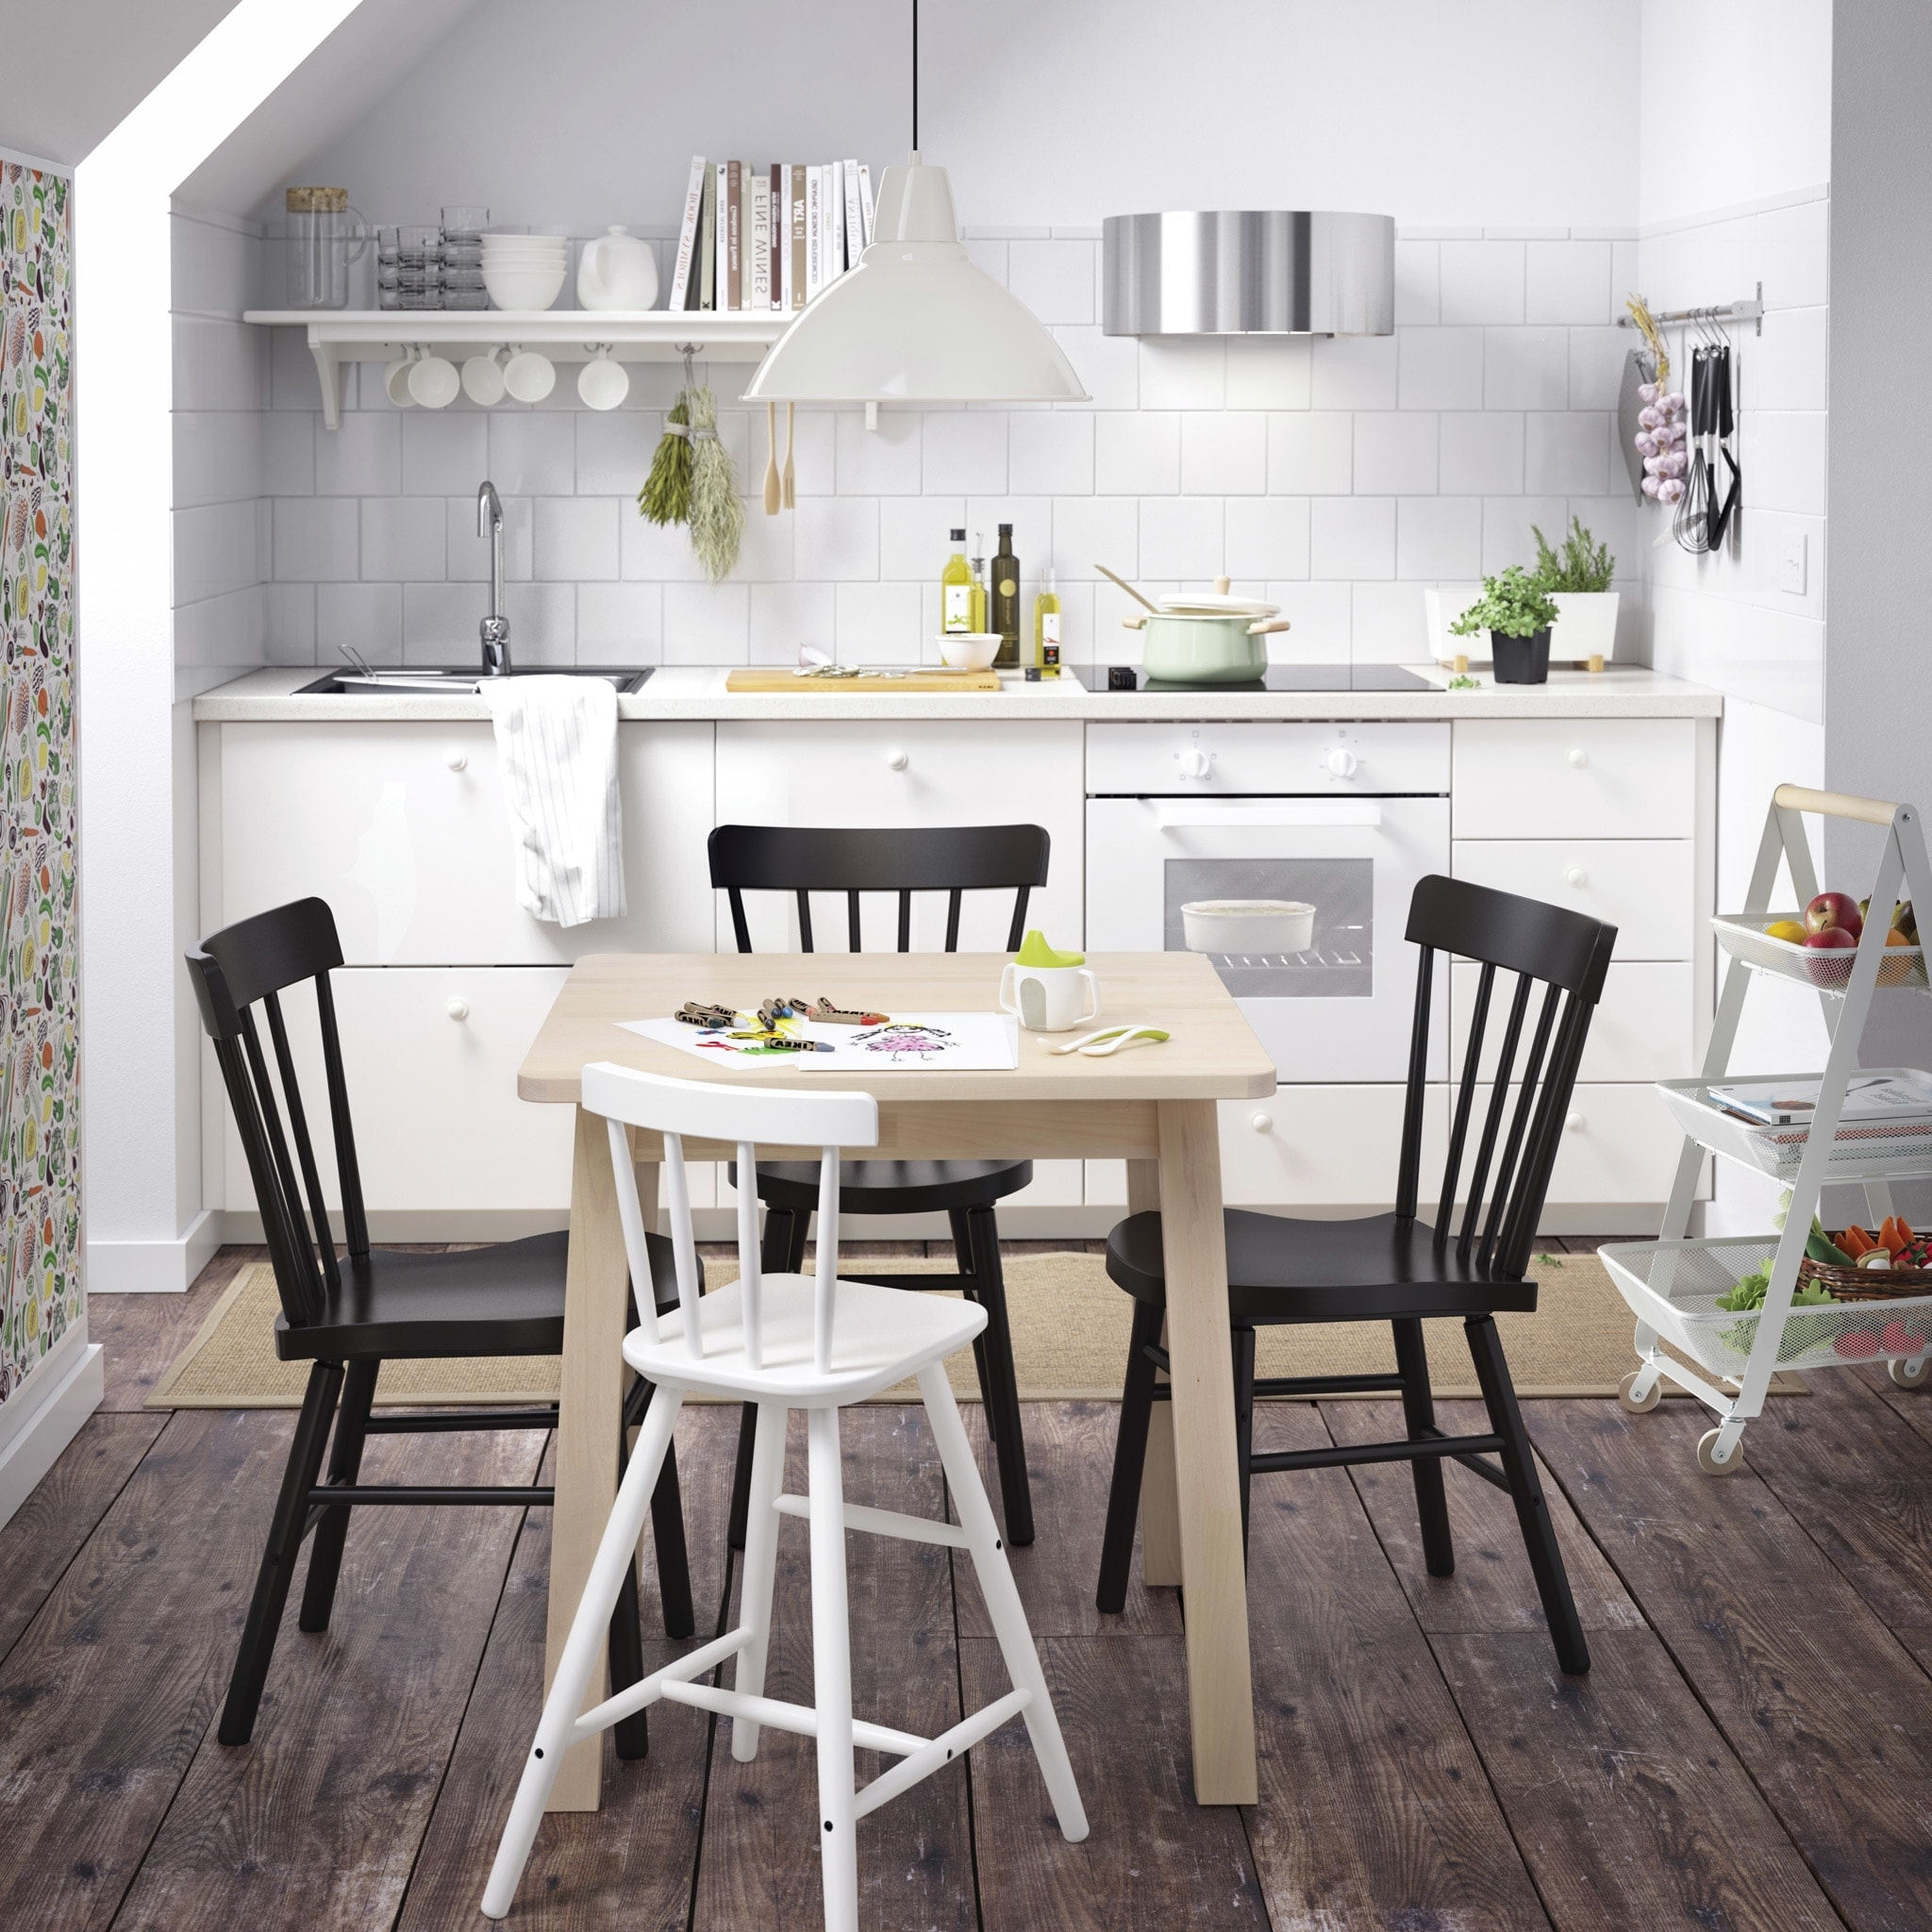 Ikea intended for Well-known Small Dining Tables And Chairs